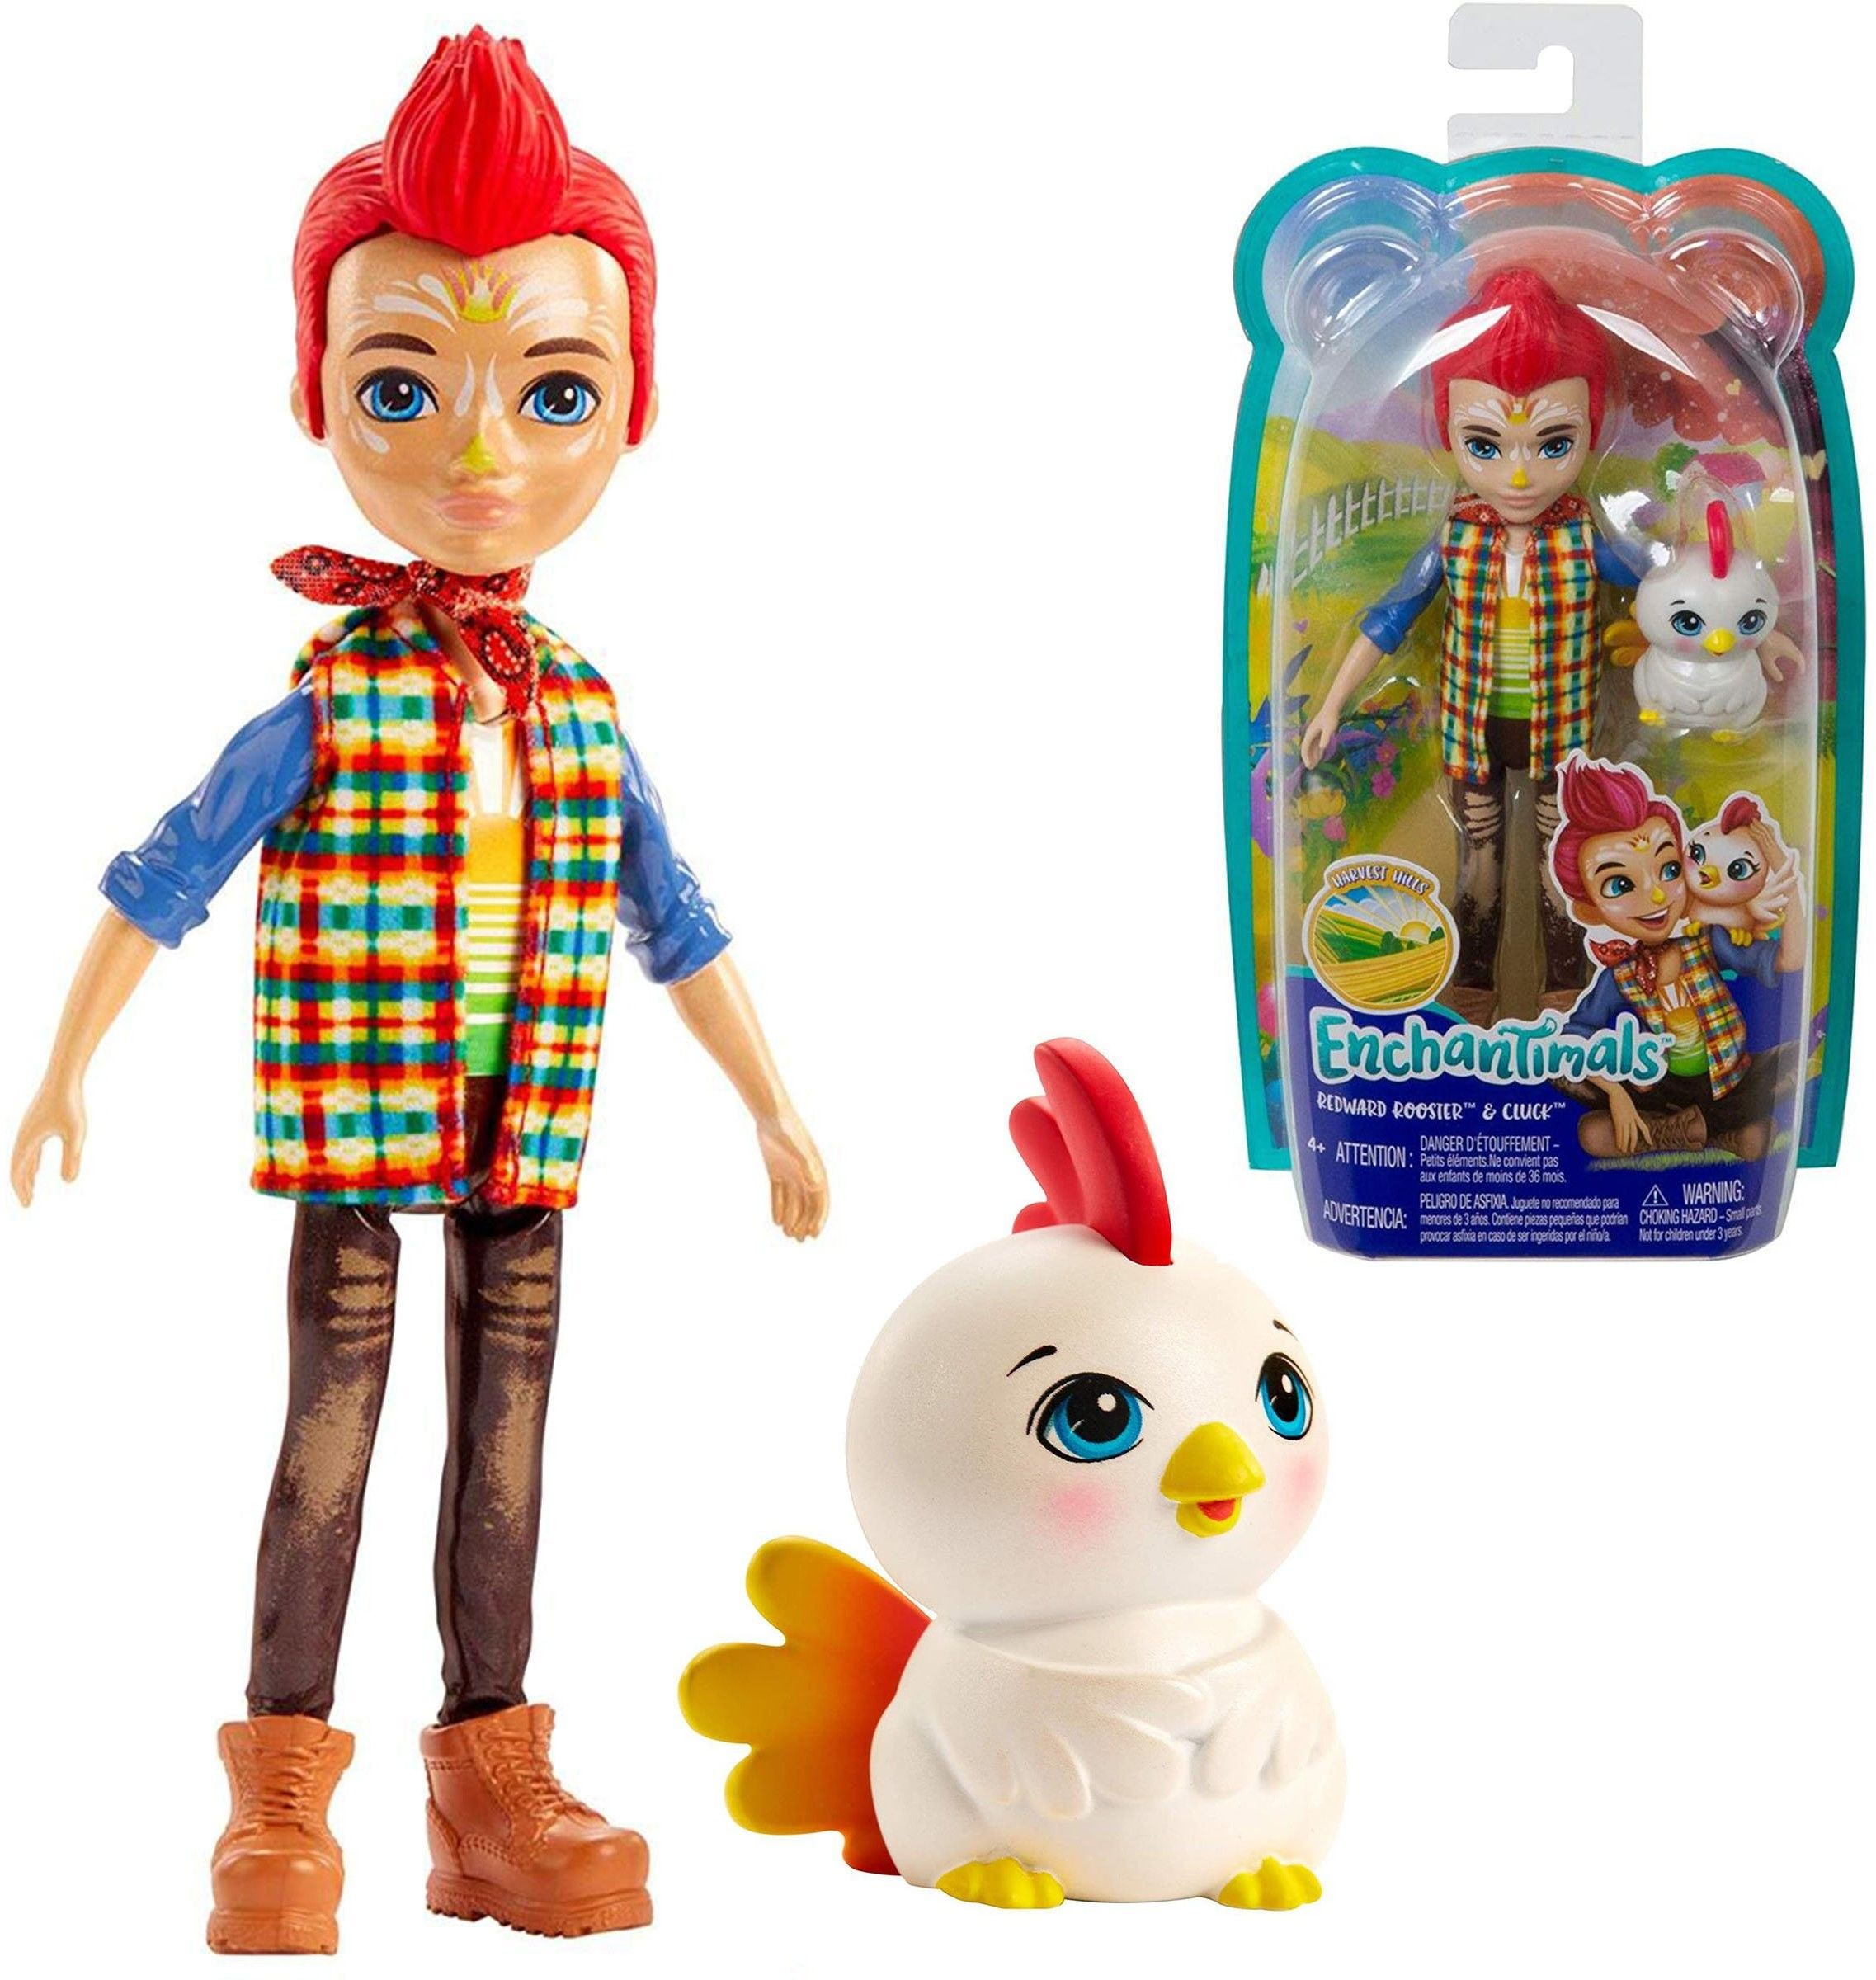 Enchantimals - Redward Rooster & Cluck GJX39